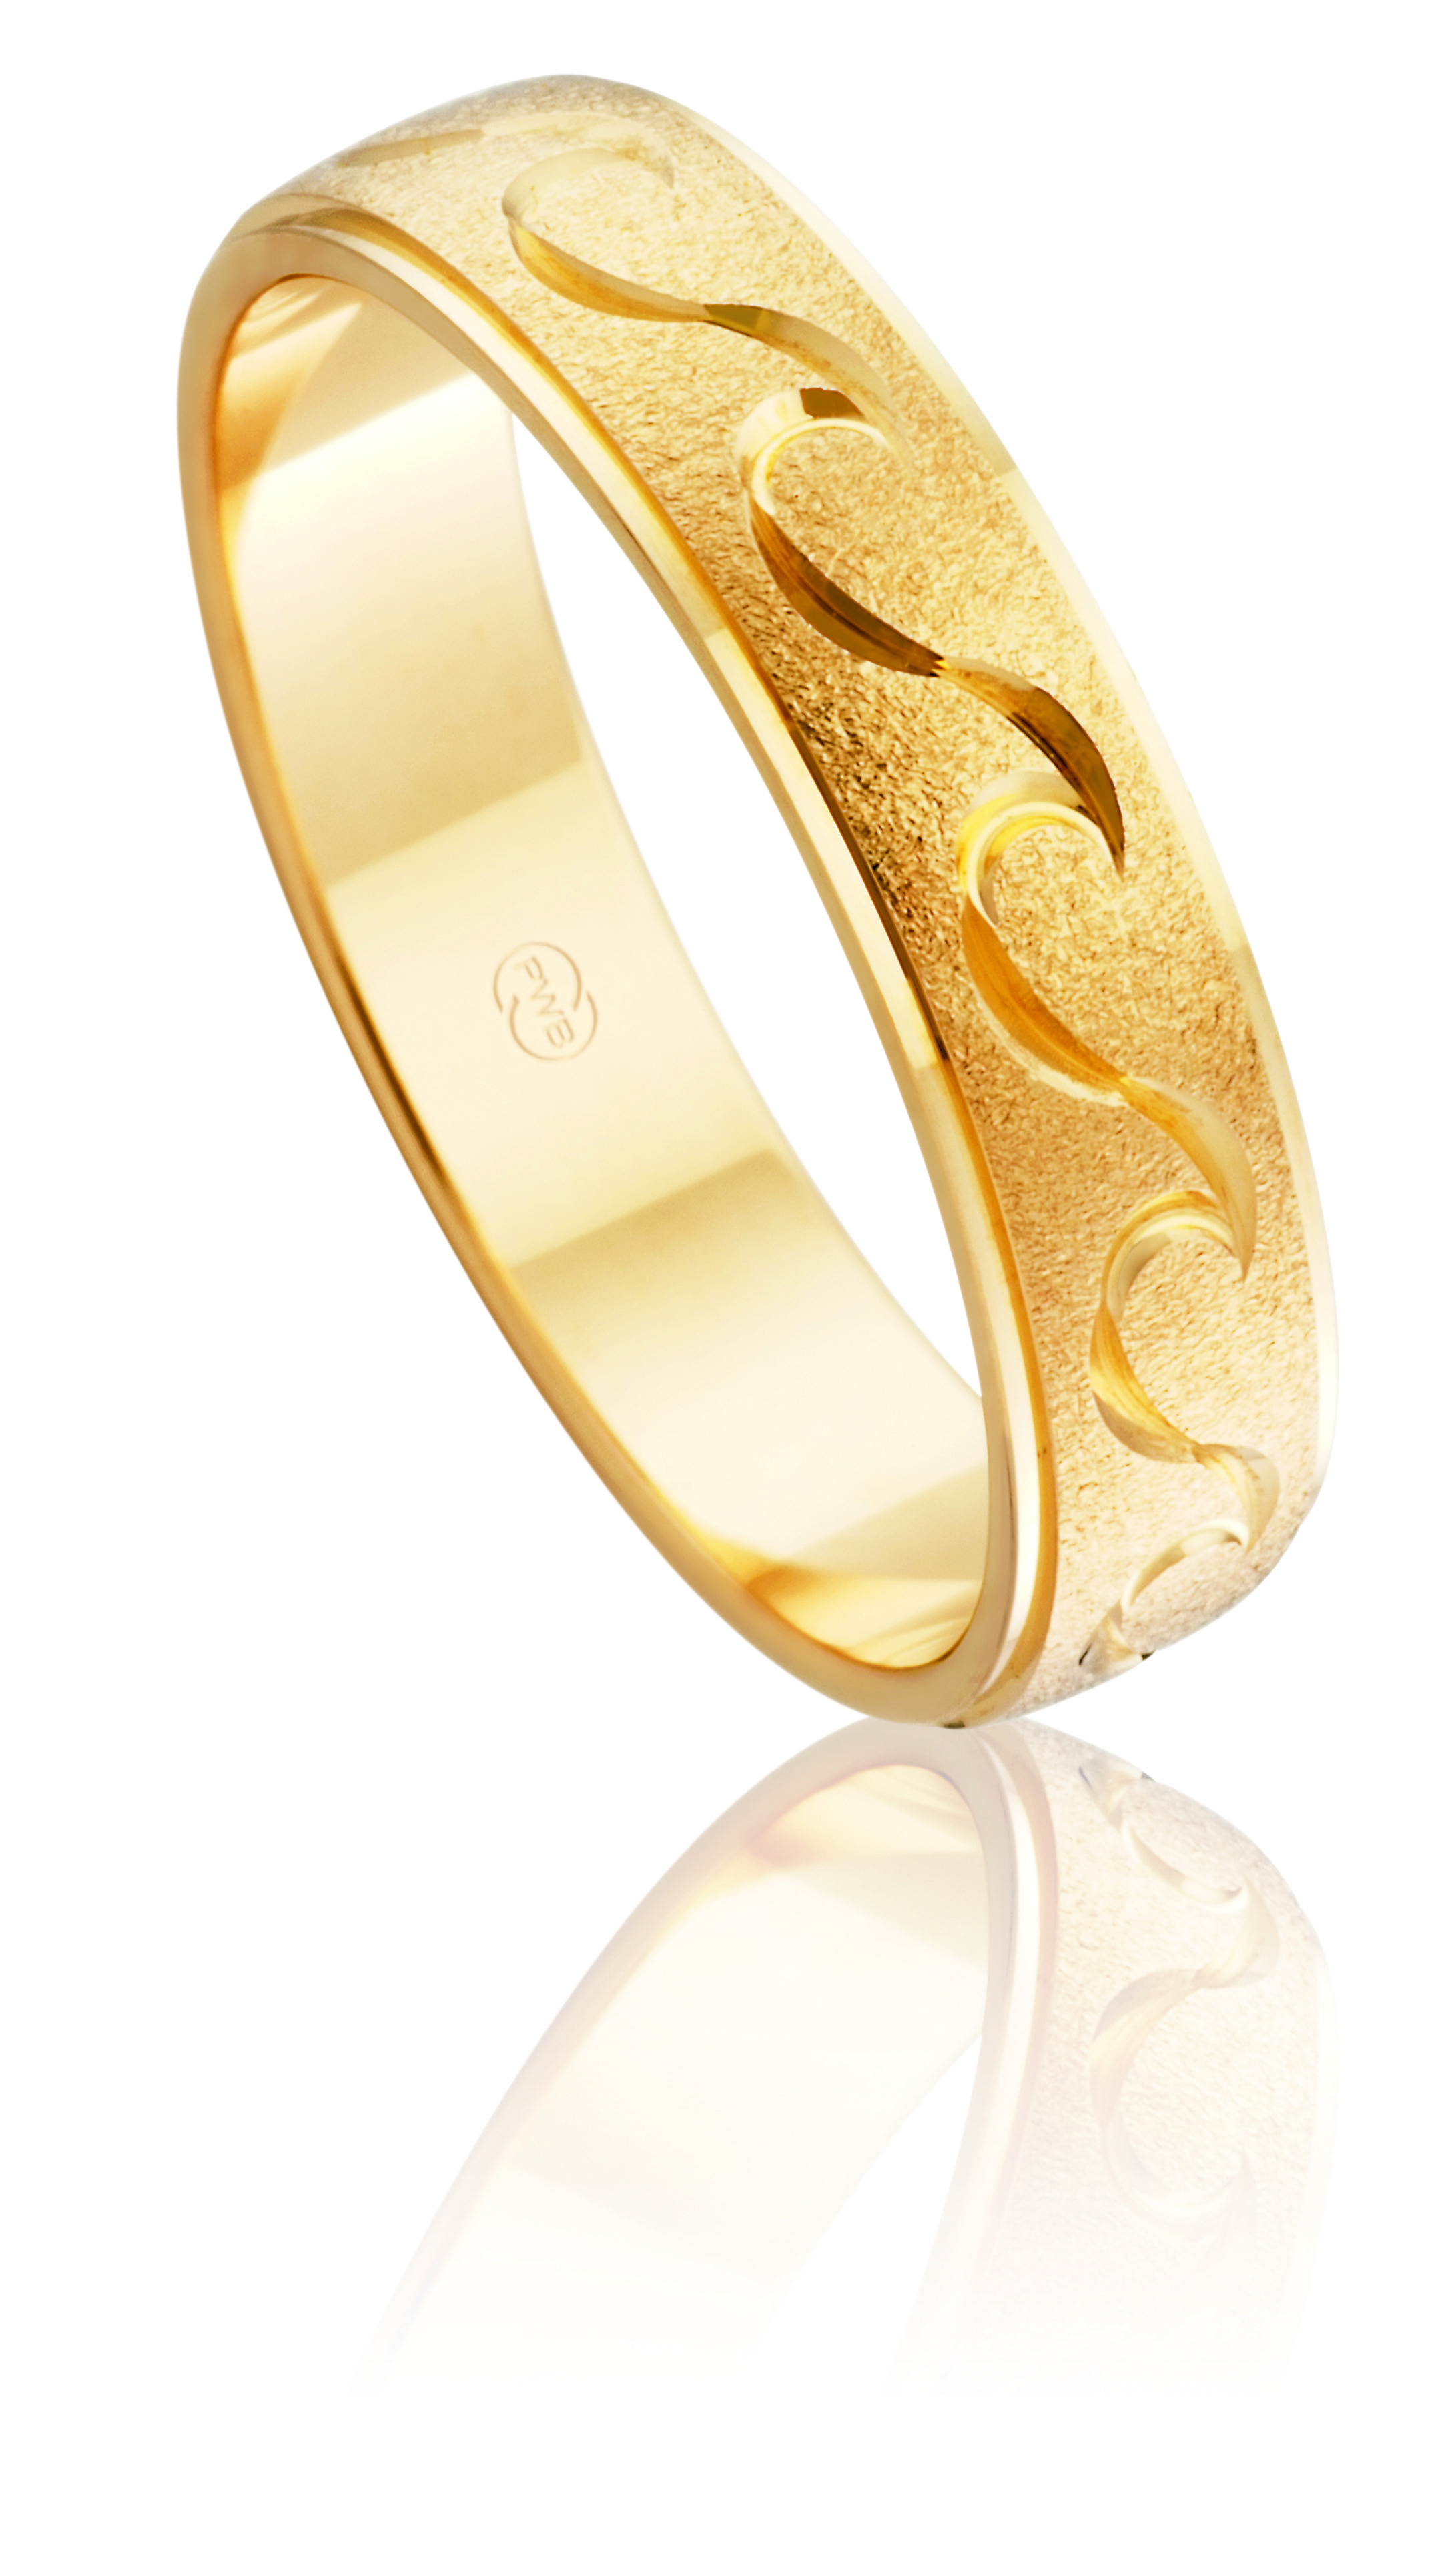 australian made wedding rings hr2822 made with gorgeous yellow